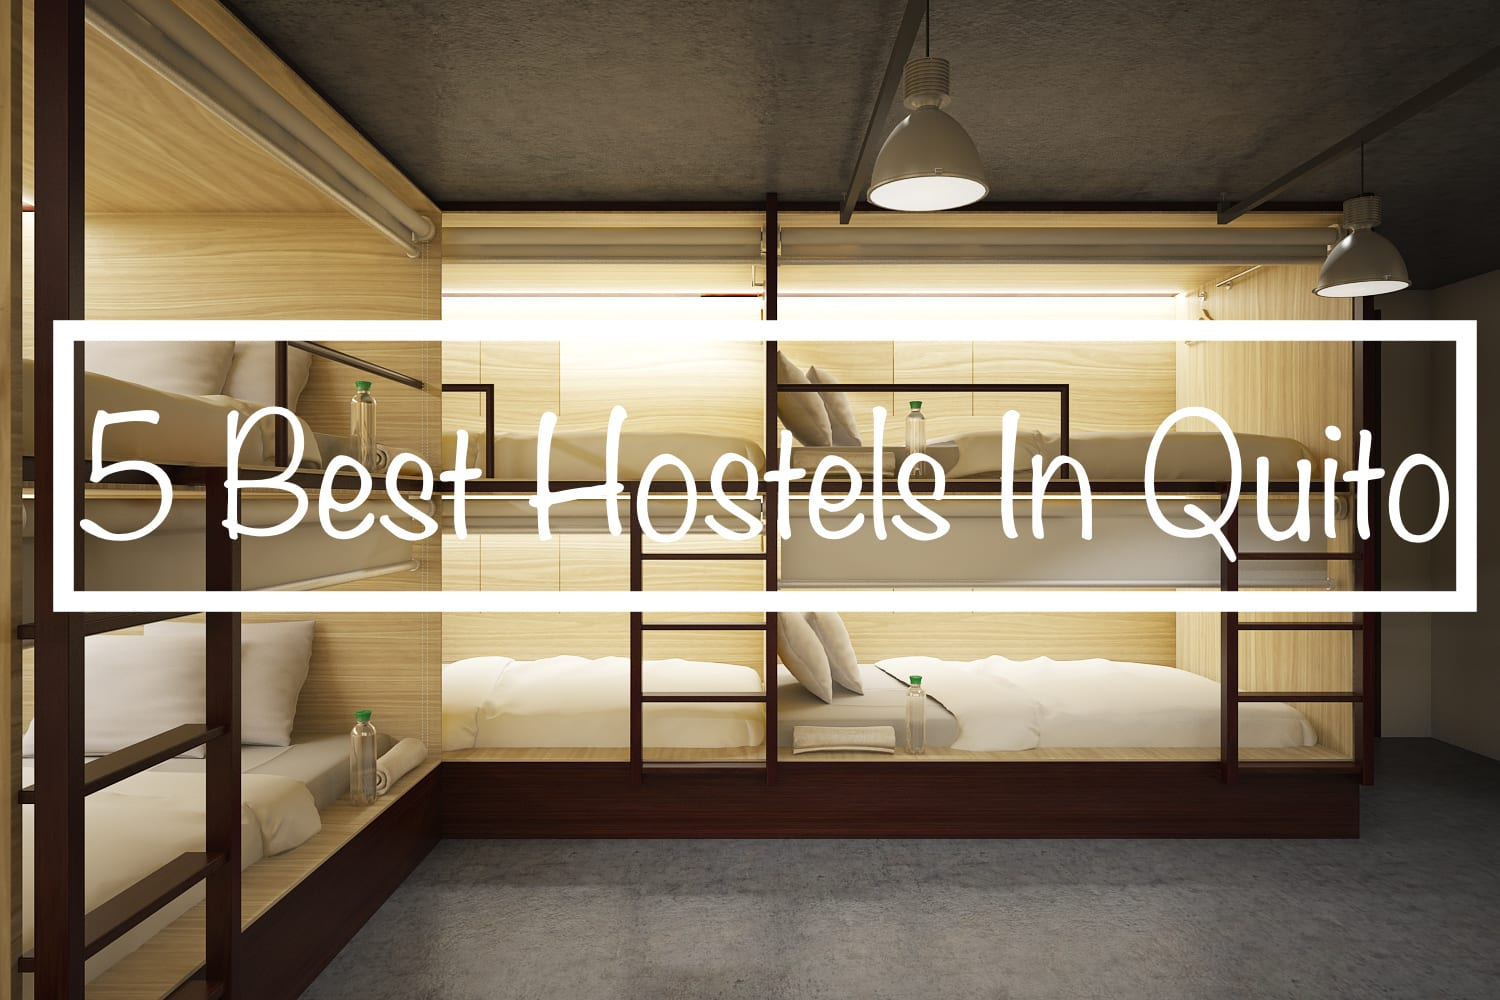 Best Hostels Quito